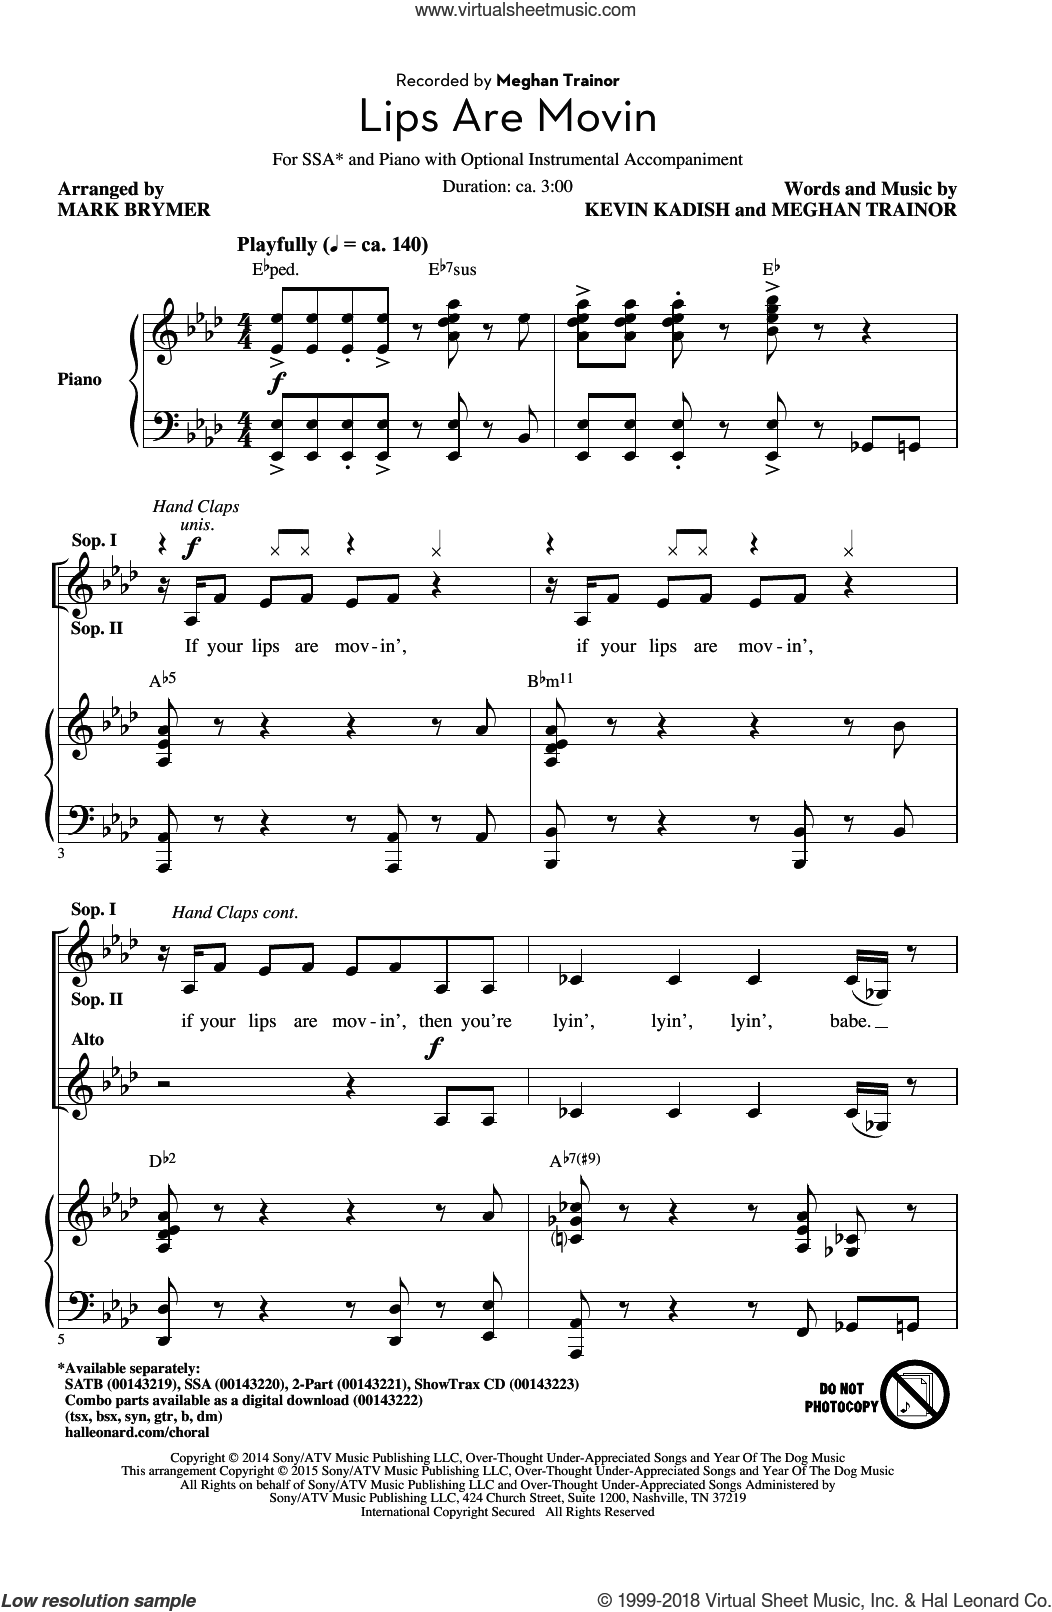 Lips Are Movin sheet music for choir (soprano voice, alto voice, choir) by Kevin Kadish, Mark Brymer and Meghan Trainor. Score Image Preview.